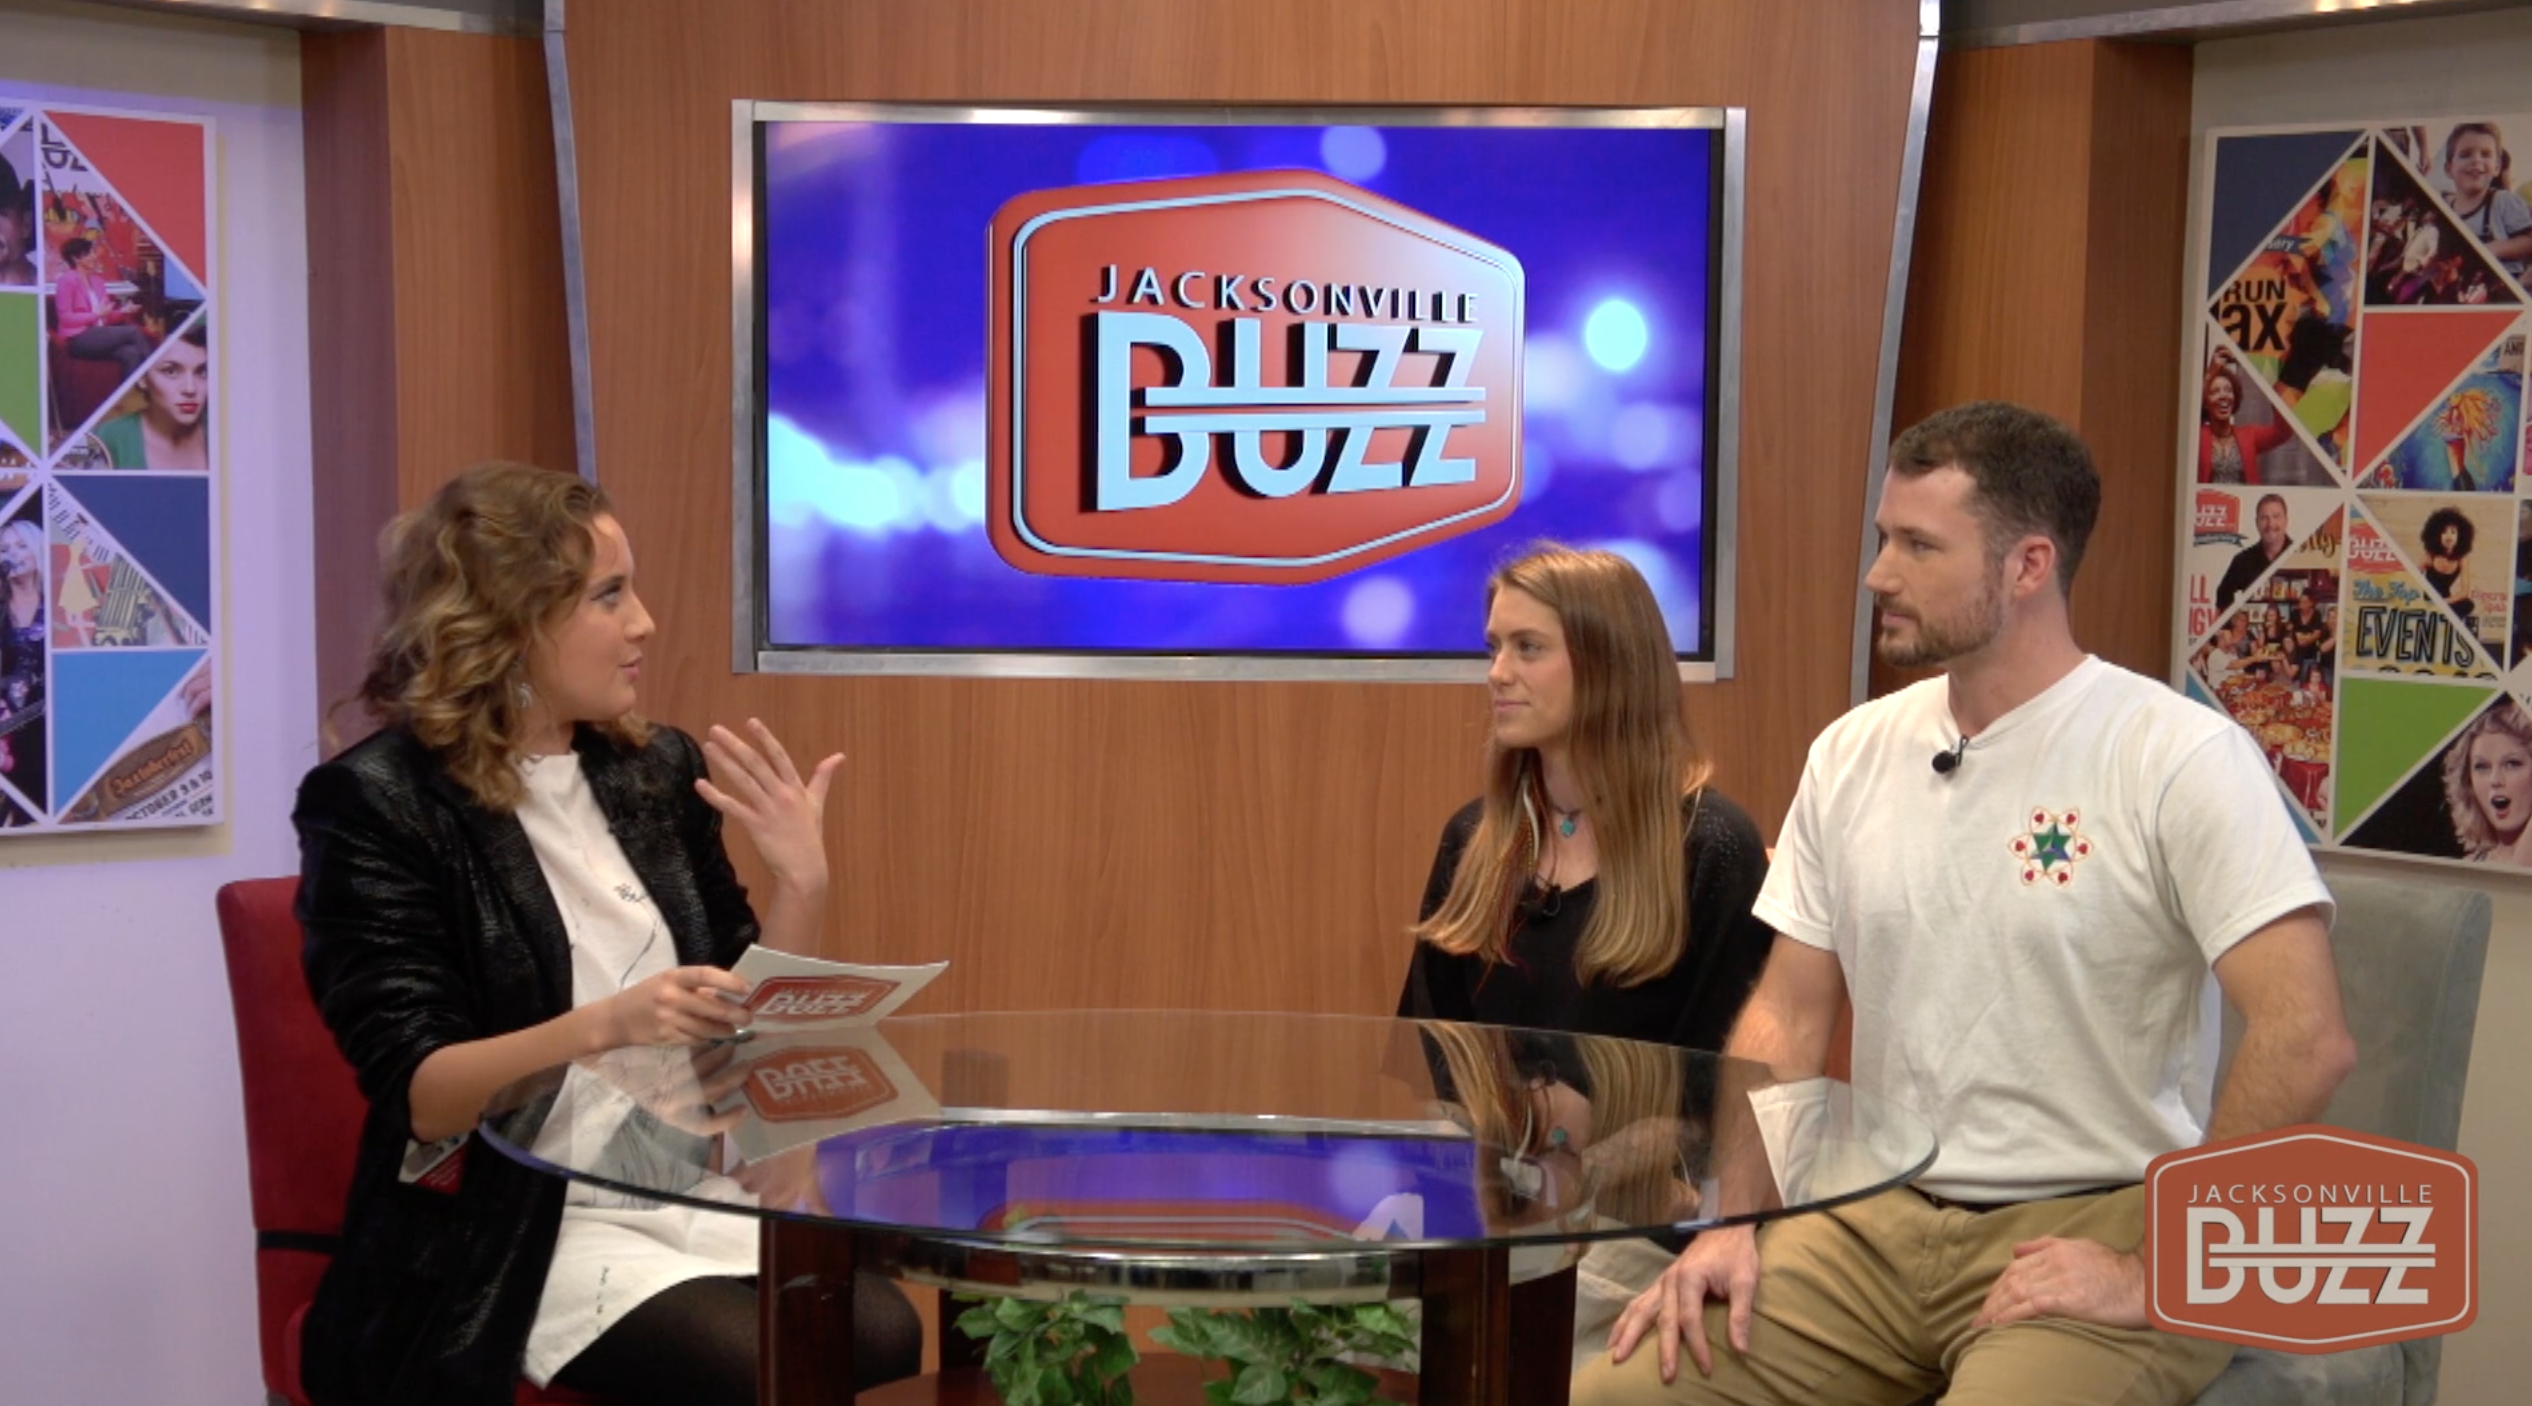 Ian & Danielle Cleary interview with the Jacksonville BUZZ about their Murals with a Message and their heart based art movement.